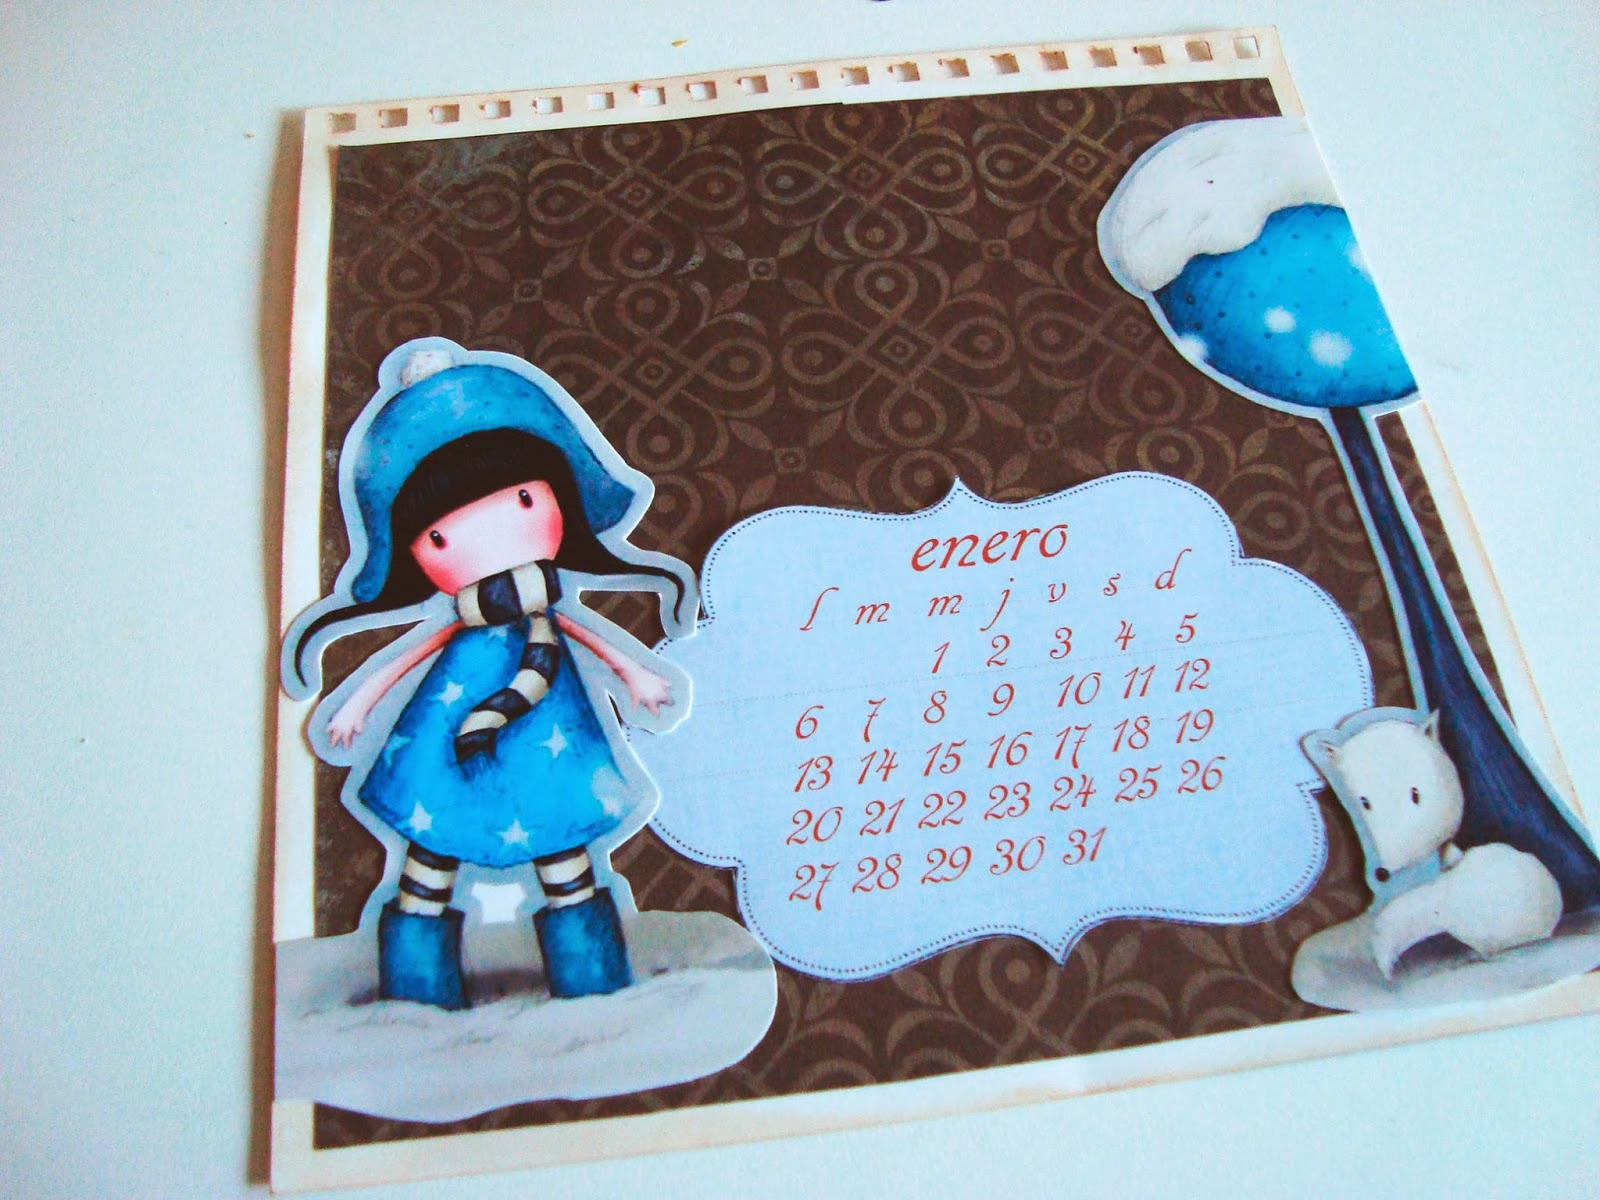 calendario_gorjuss_hojaejemplo